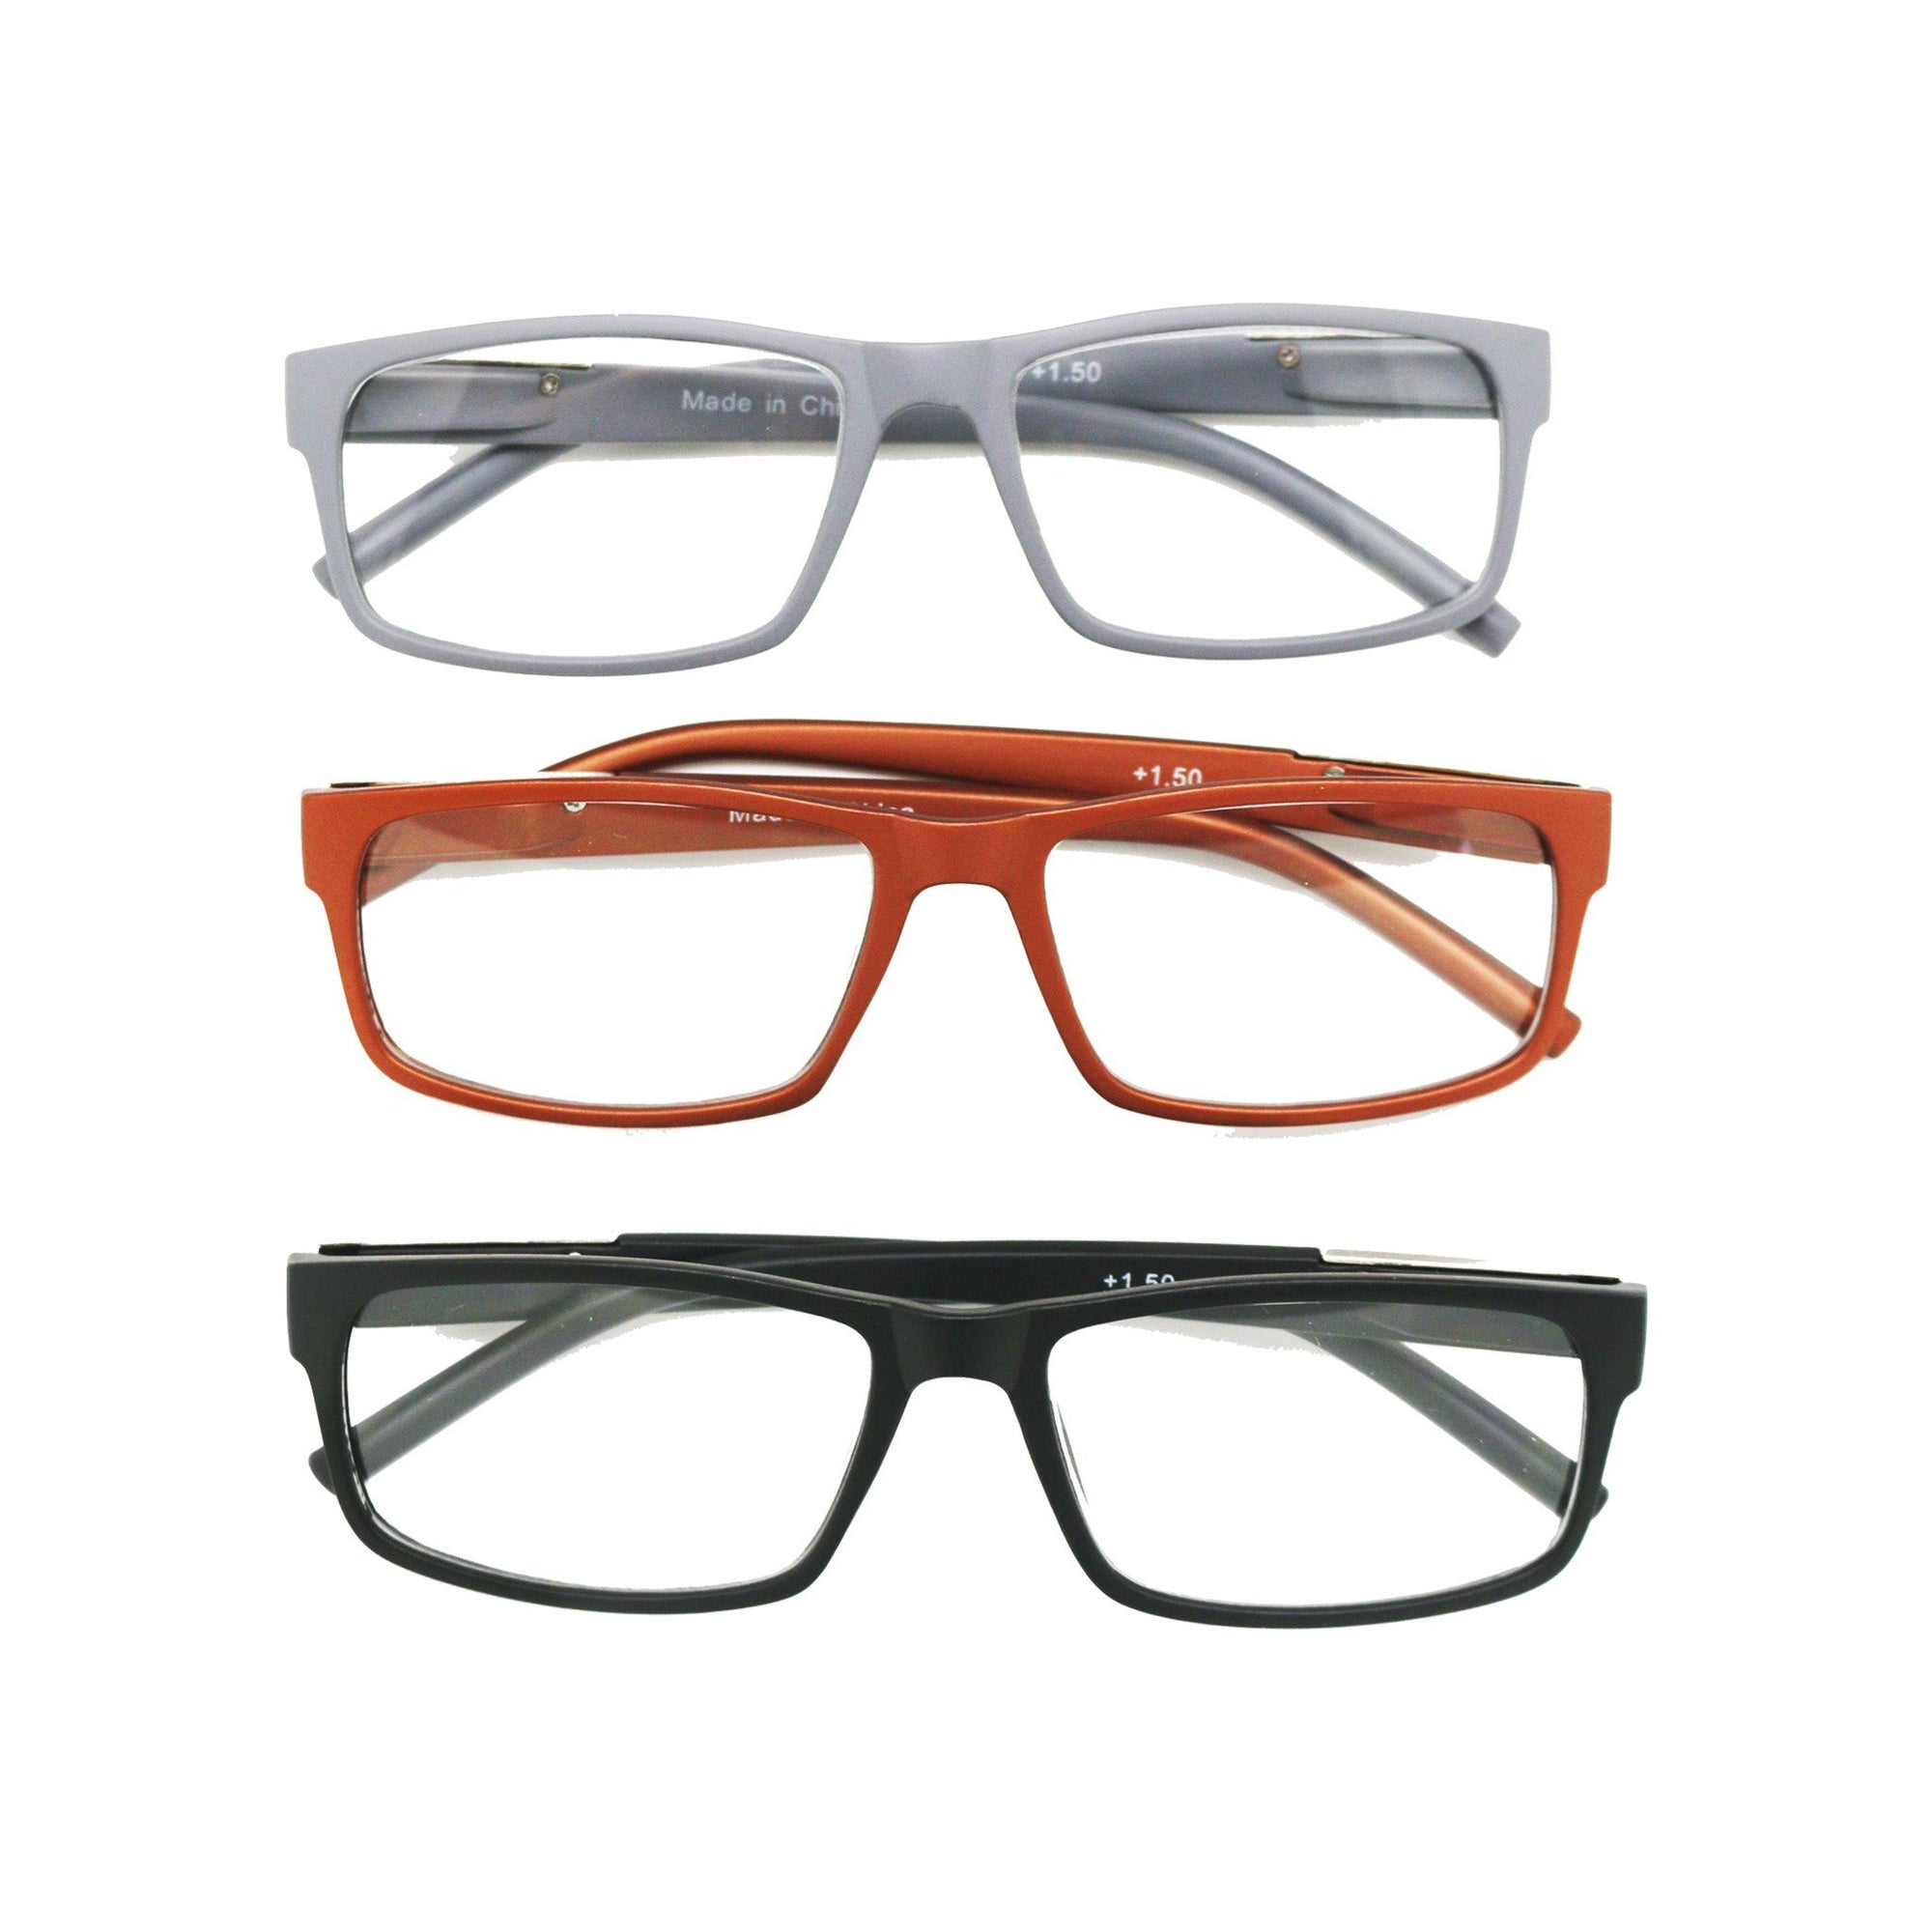 Casa Mens Reading Glasses +1.5 Magnification 3pk